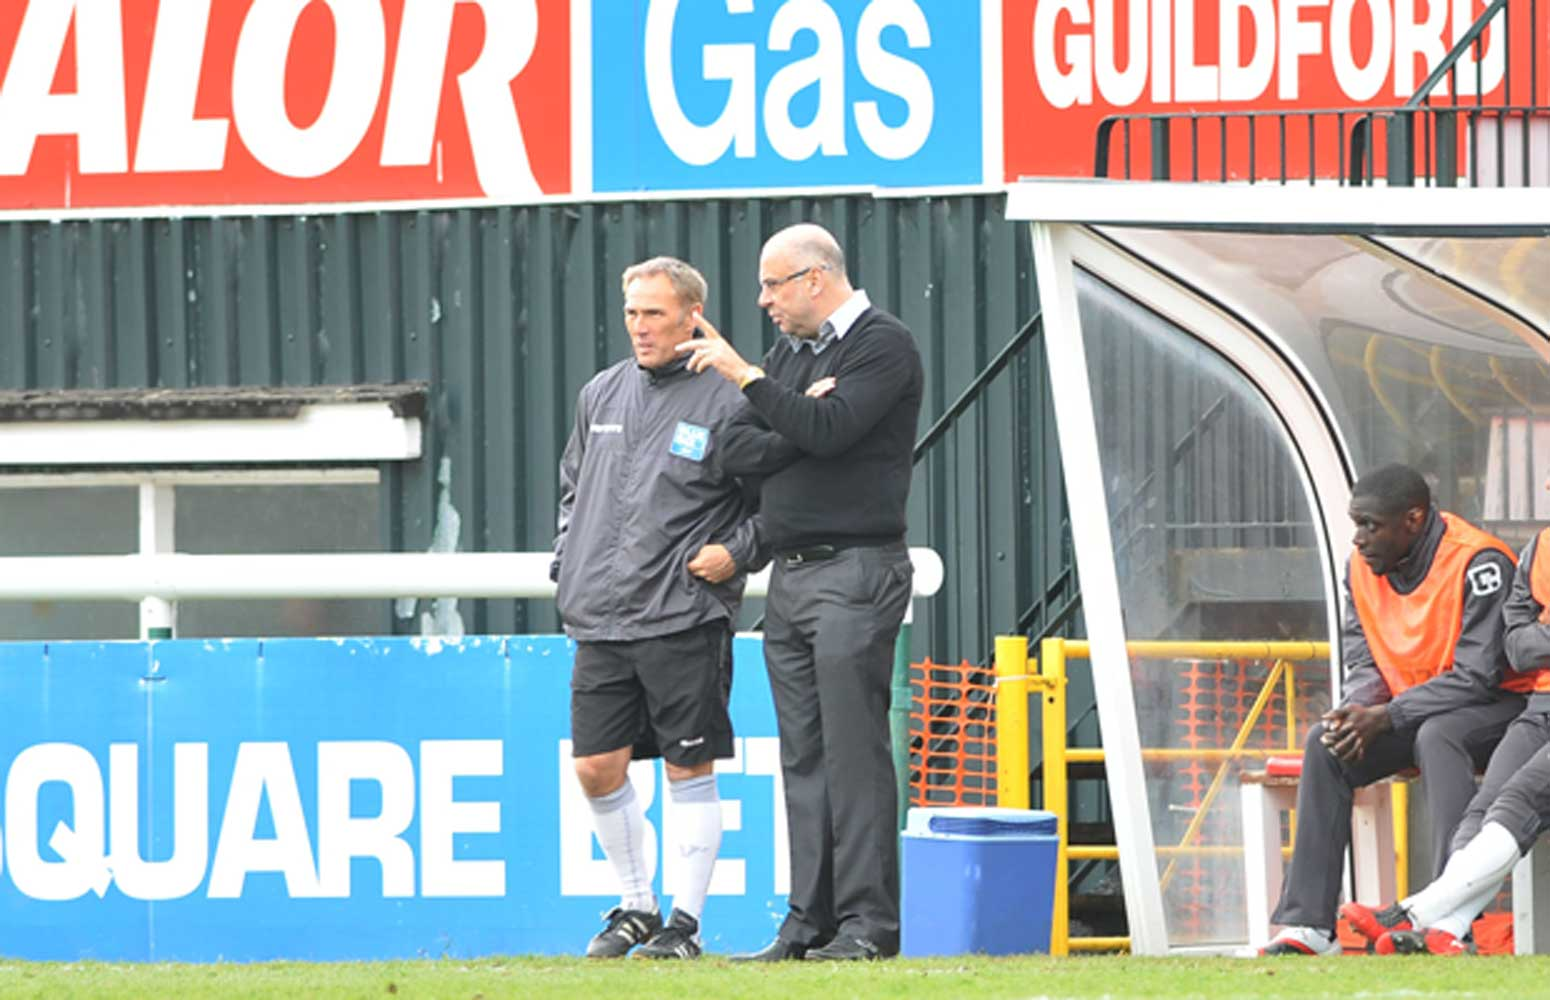 WINNING PAIR - Garry Hill and Steve Thompson discuss the way forward